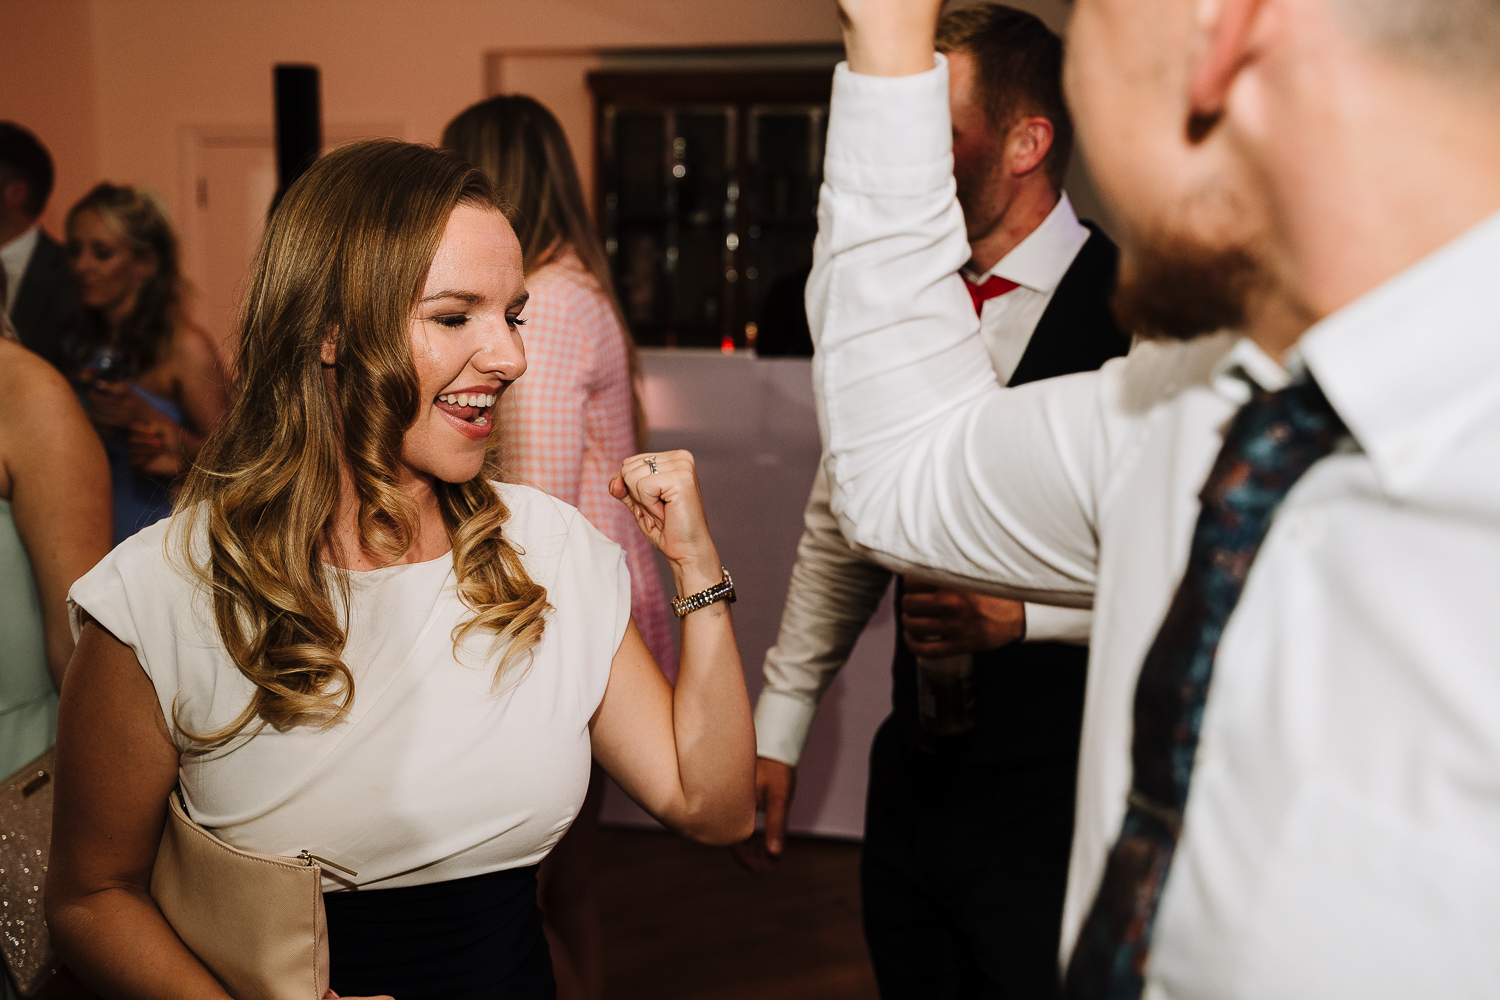 Guests dancing at Mitton Hall